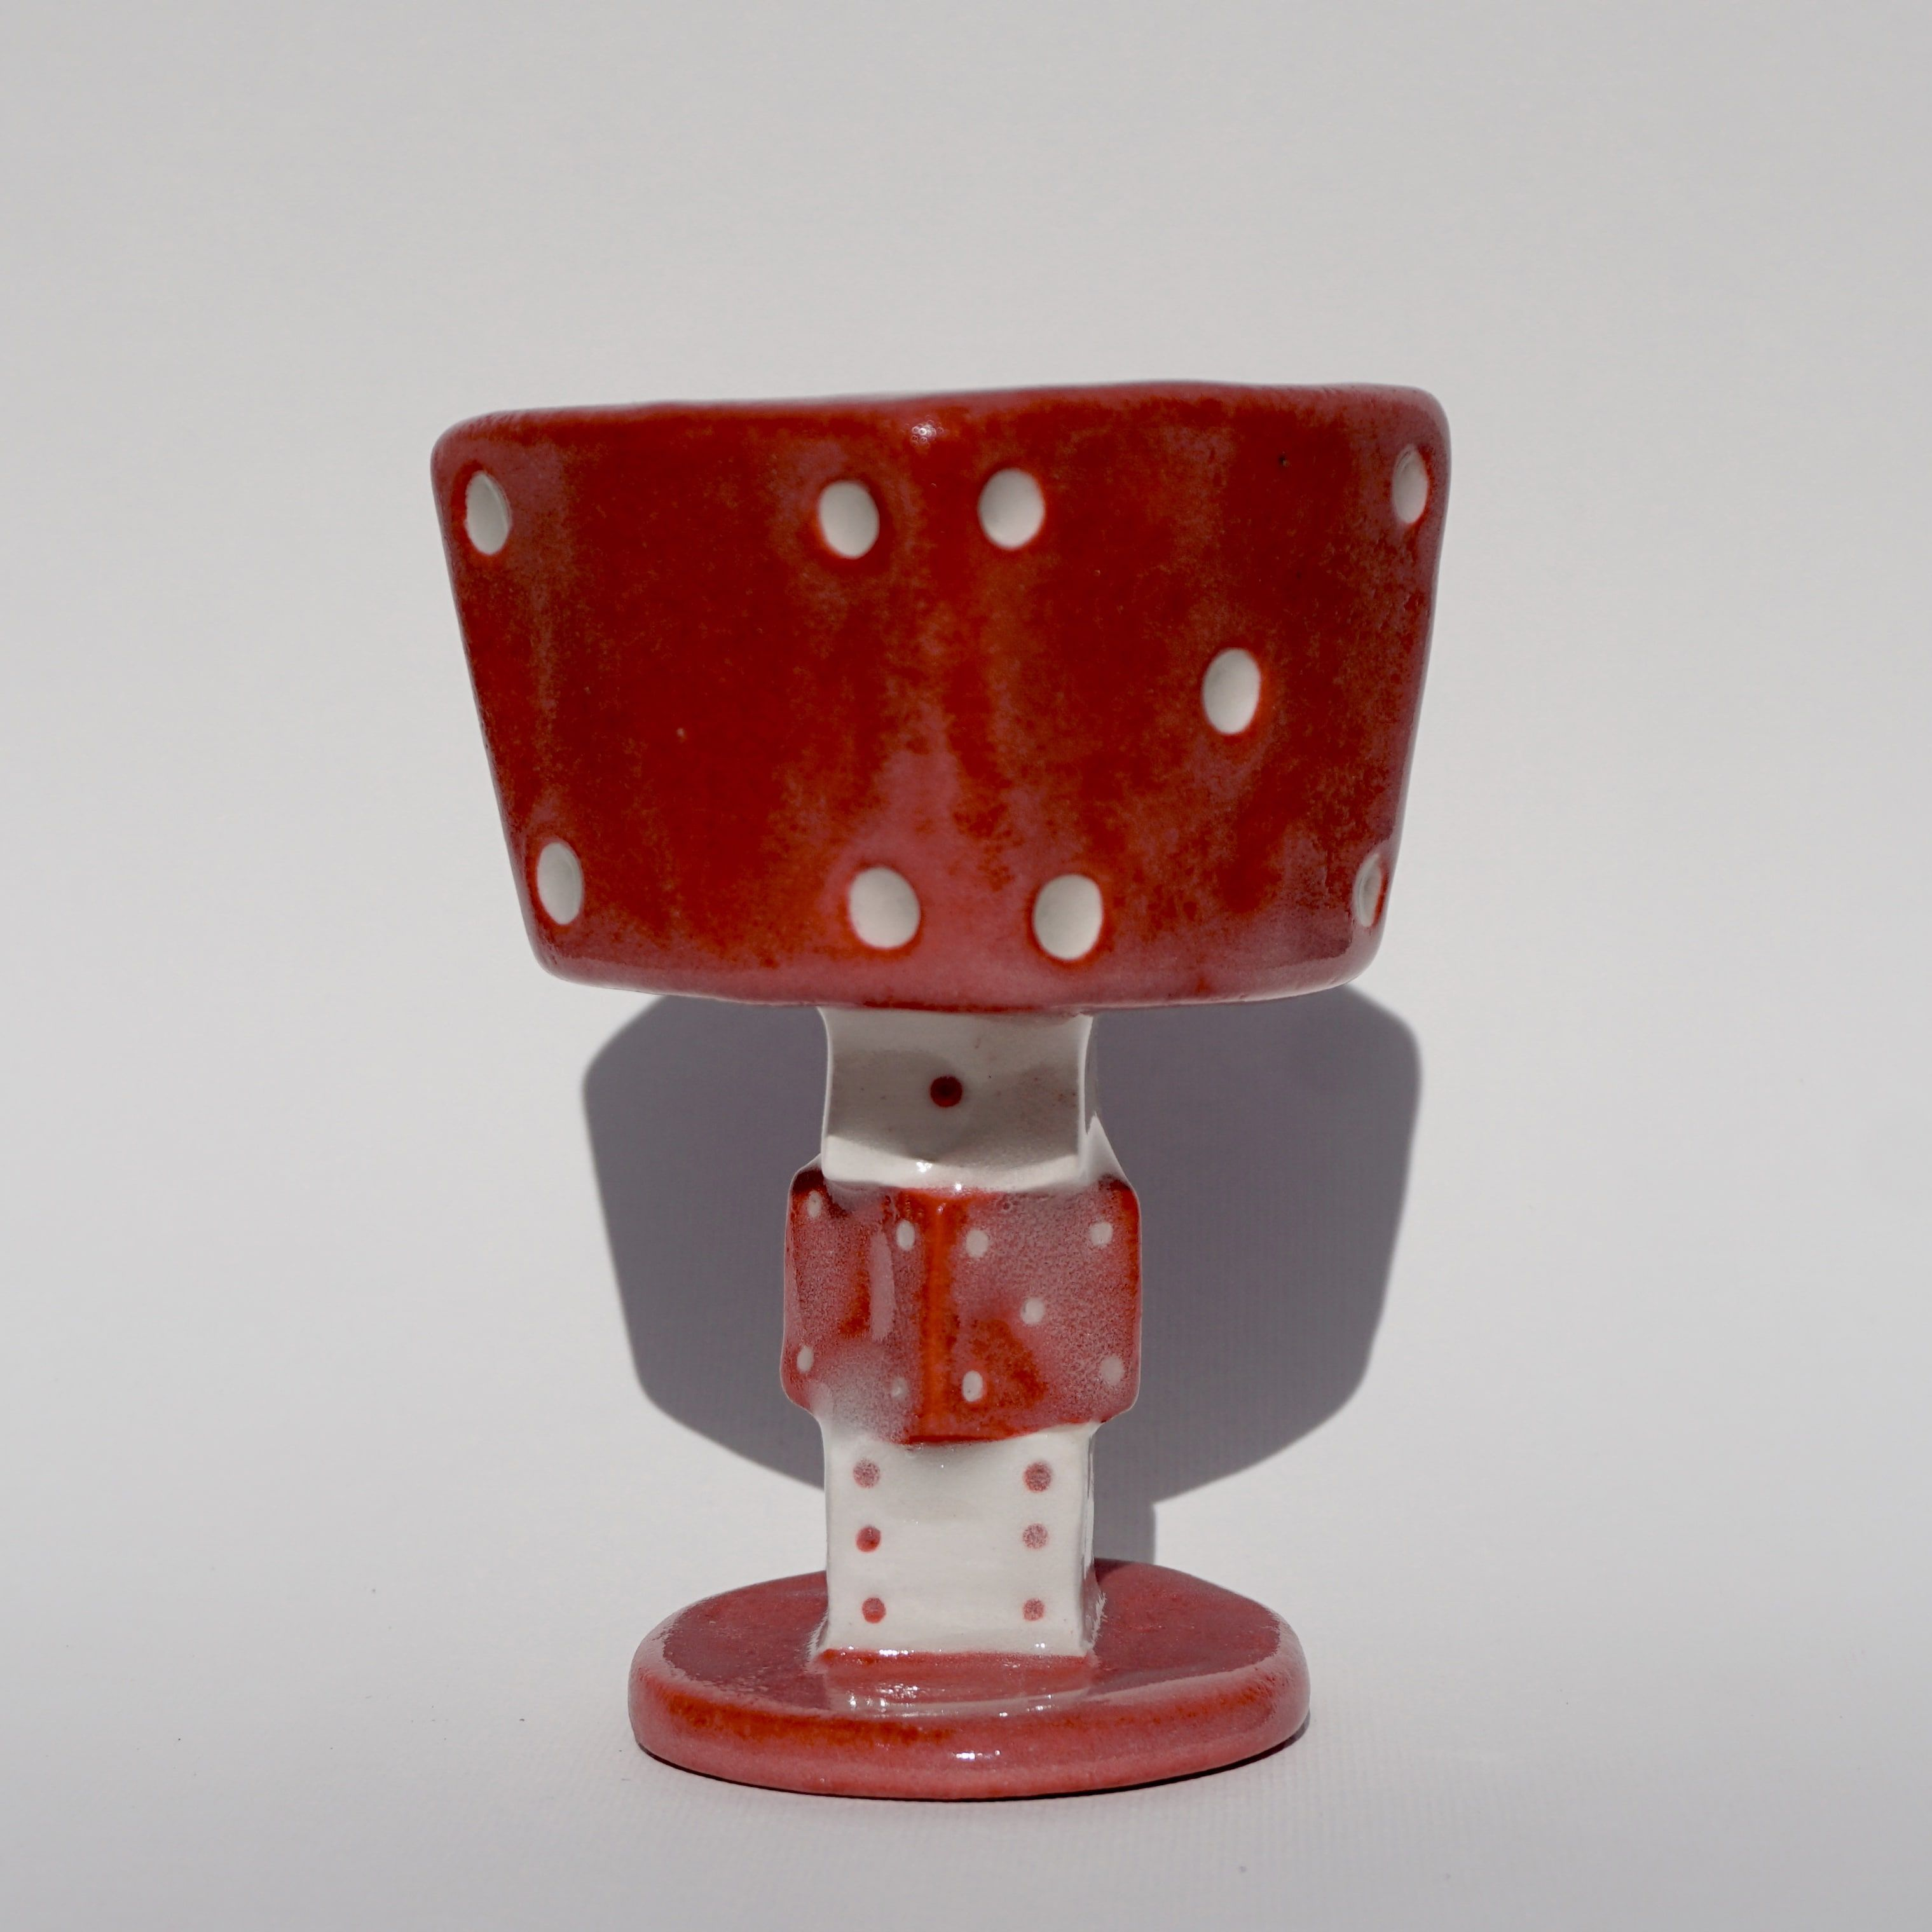 Red and White Ceramic Dice Goblet